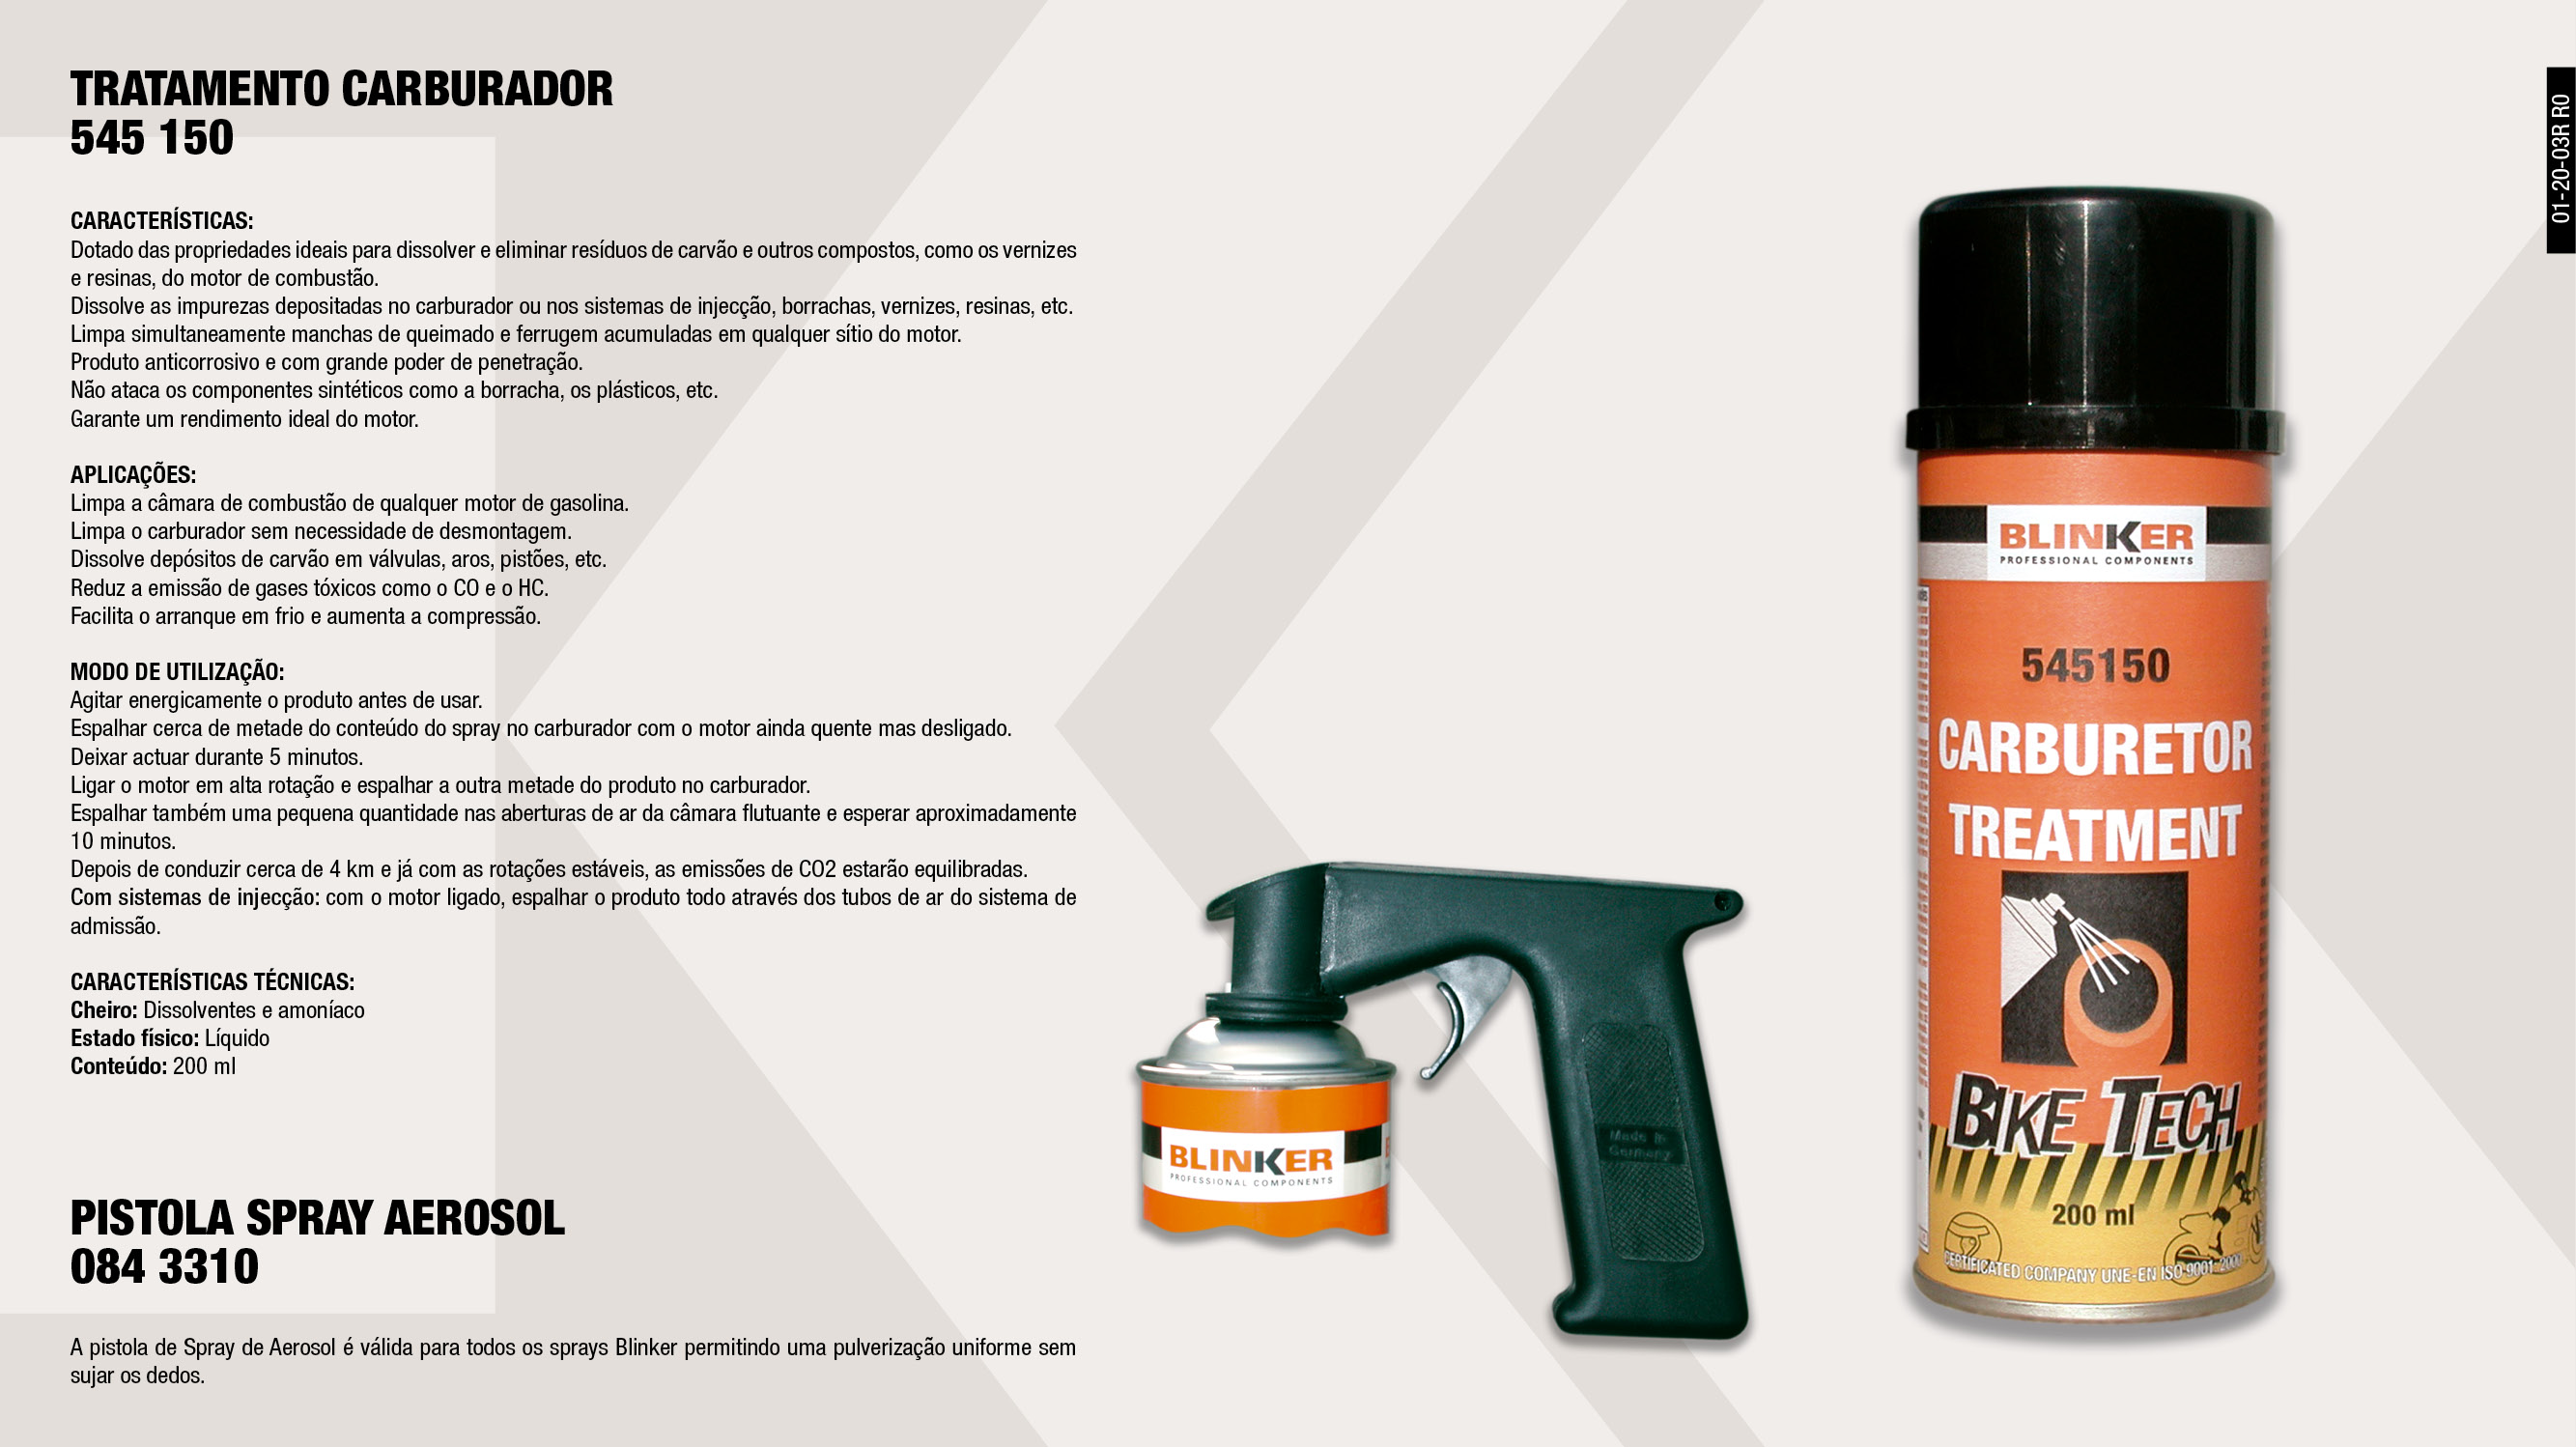 TRATAMIENTO CARBURADOR 200ML (BIKE)                         ,  									PISTOLA SPRAY AEROSSOL                                      ,